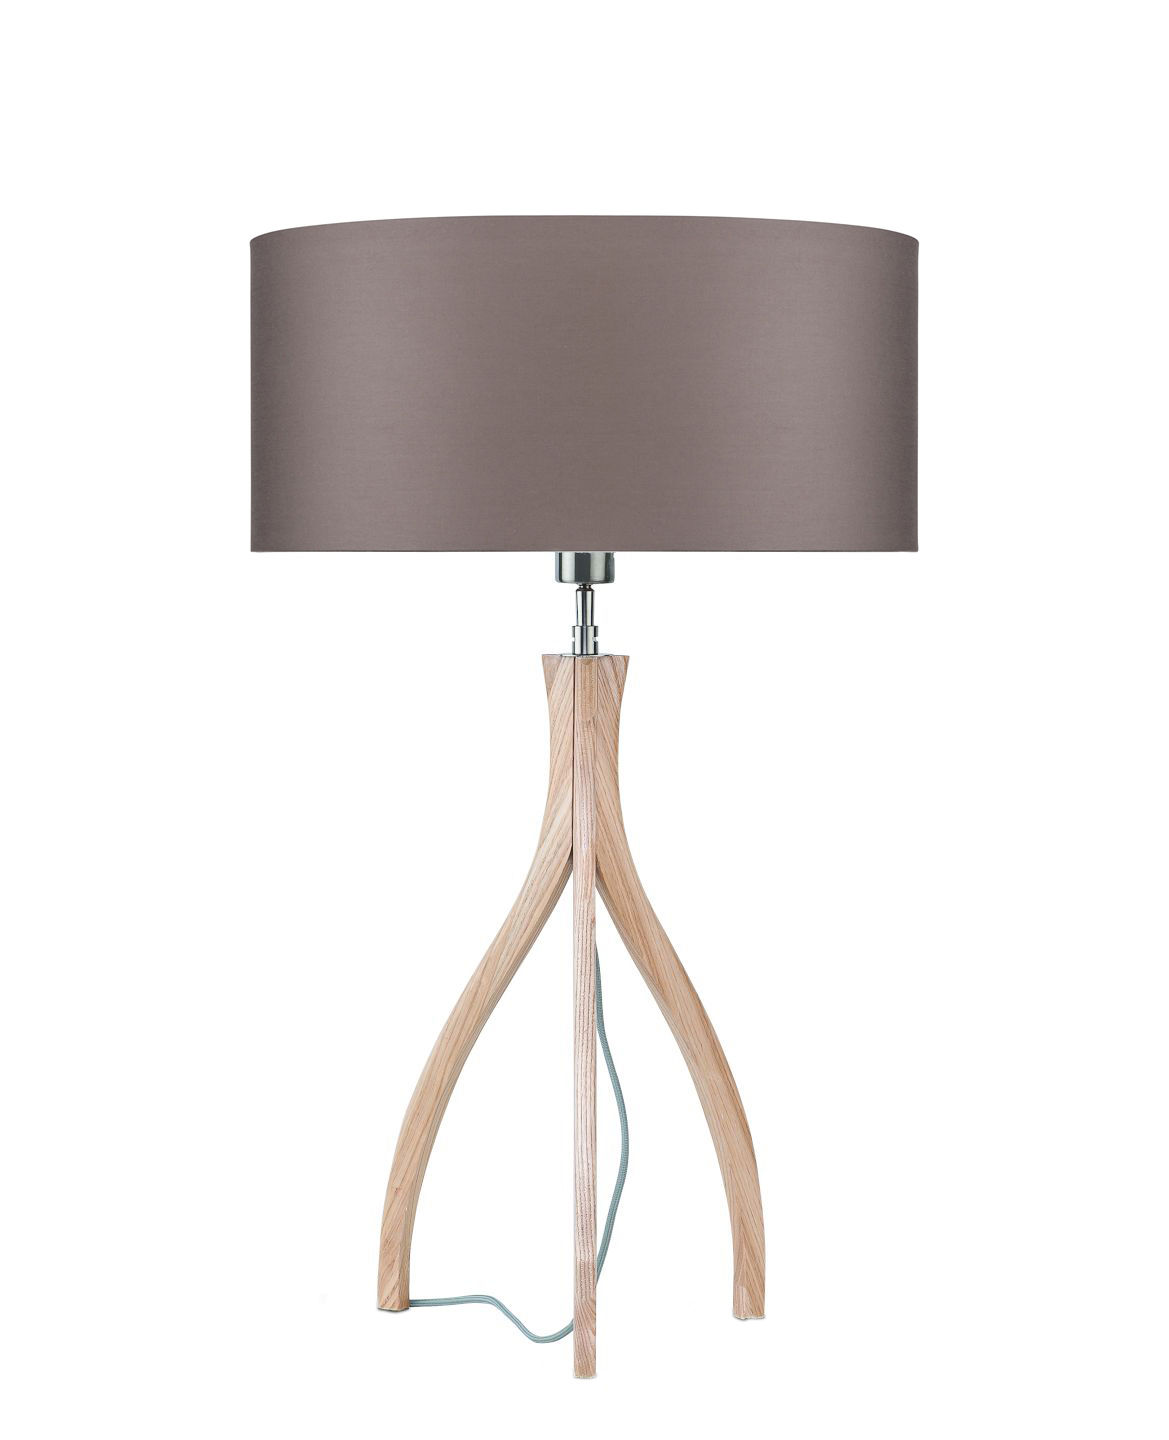 Lighting - Table Lamps - Montréal Table lamp - / Wood & fabric by It's about Romi - Smoked grey / Wooden base - Ashwood, Cotton